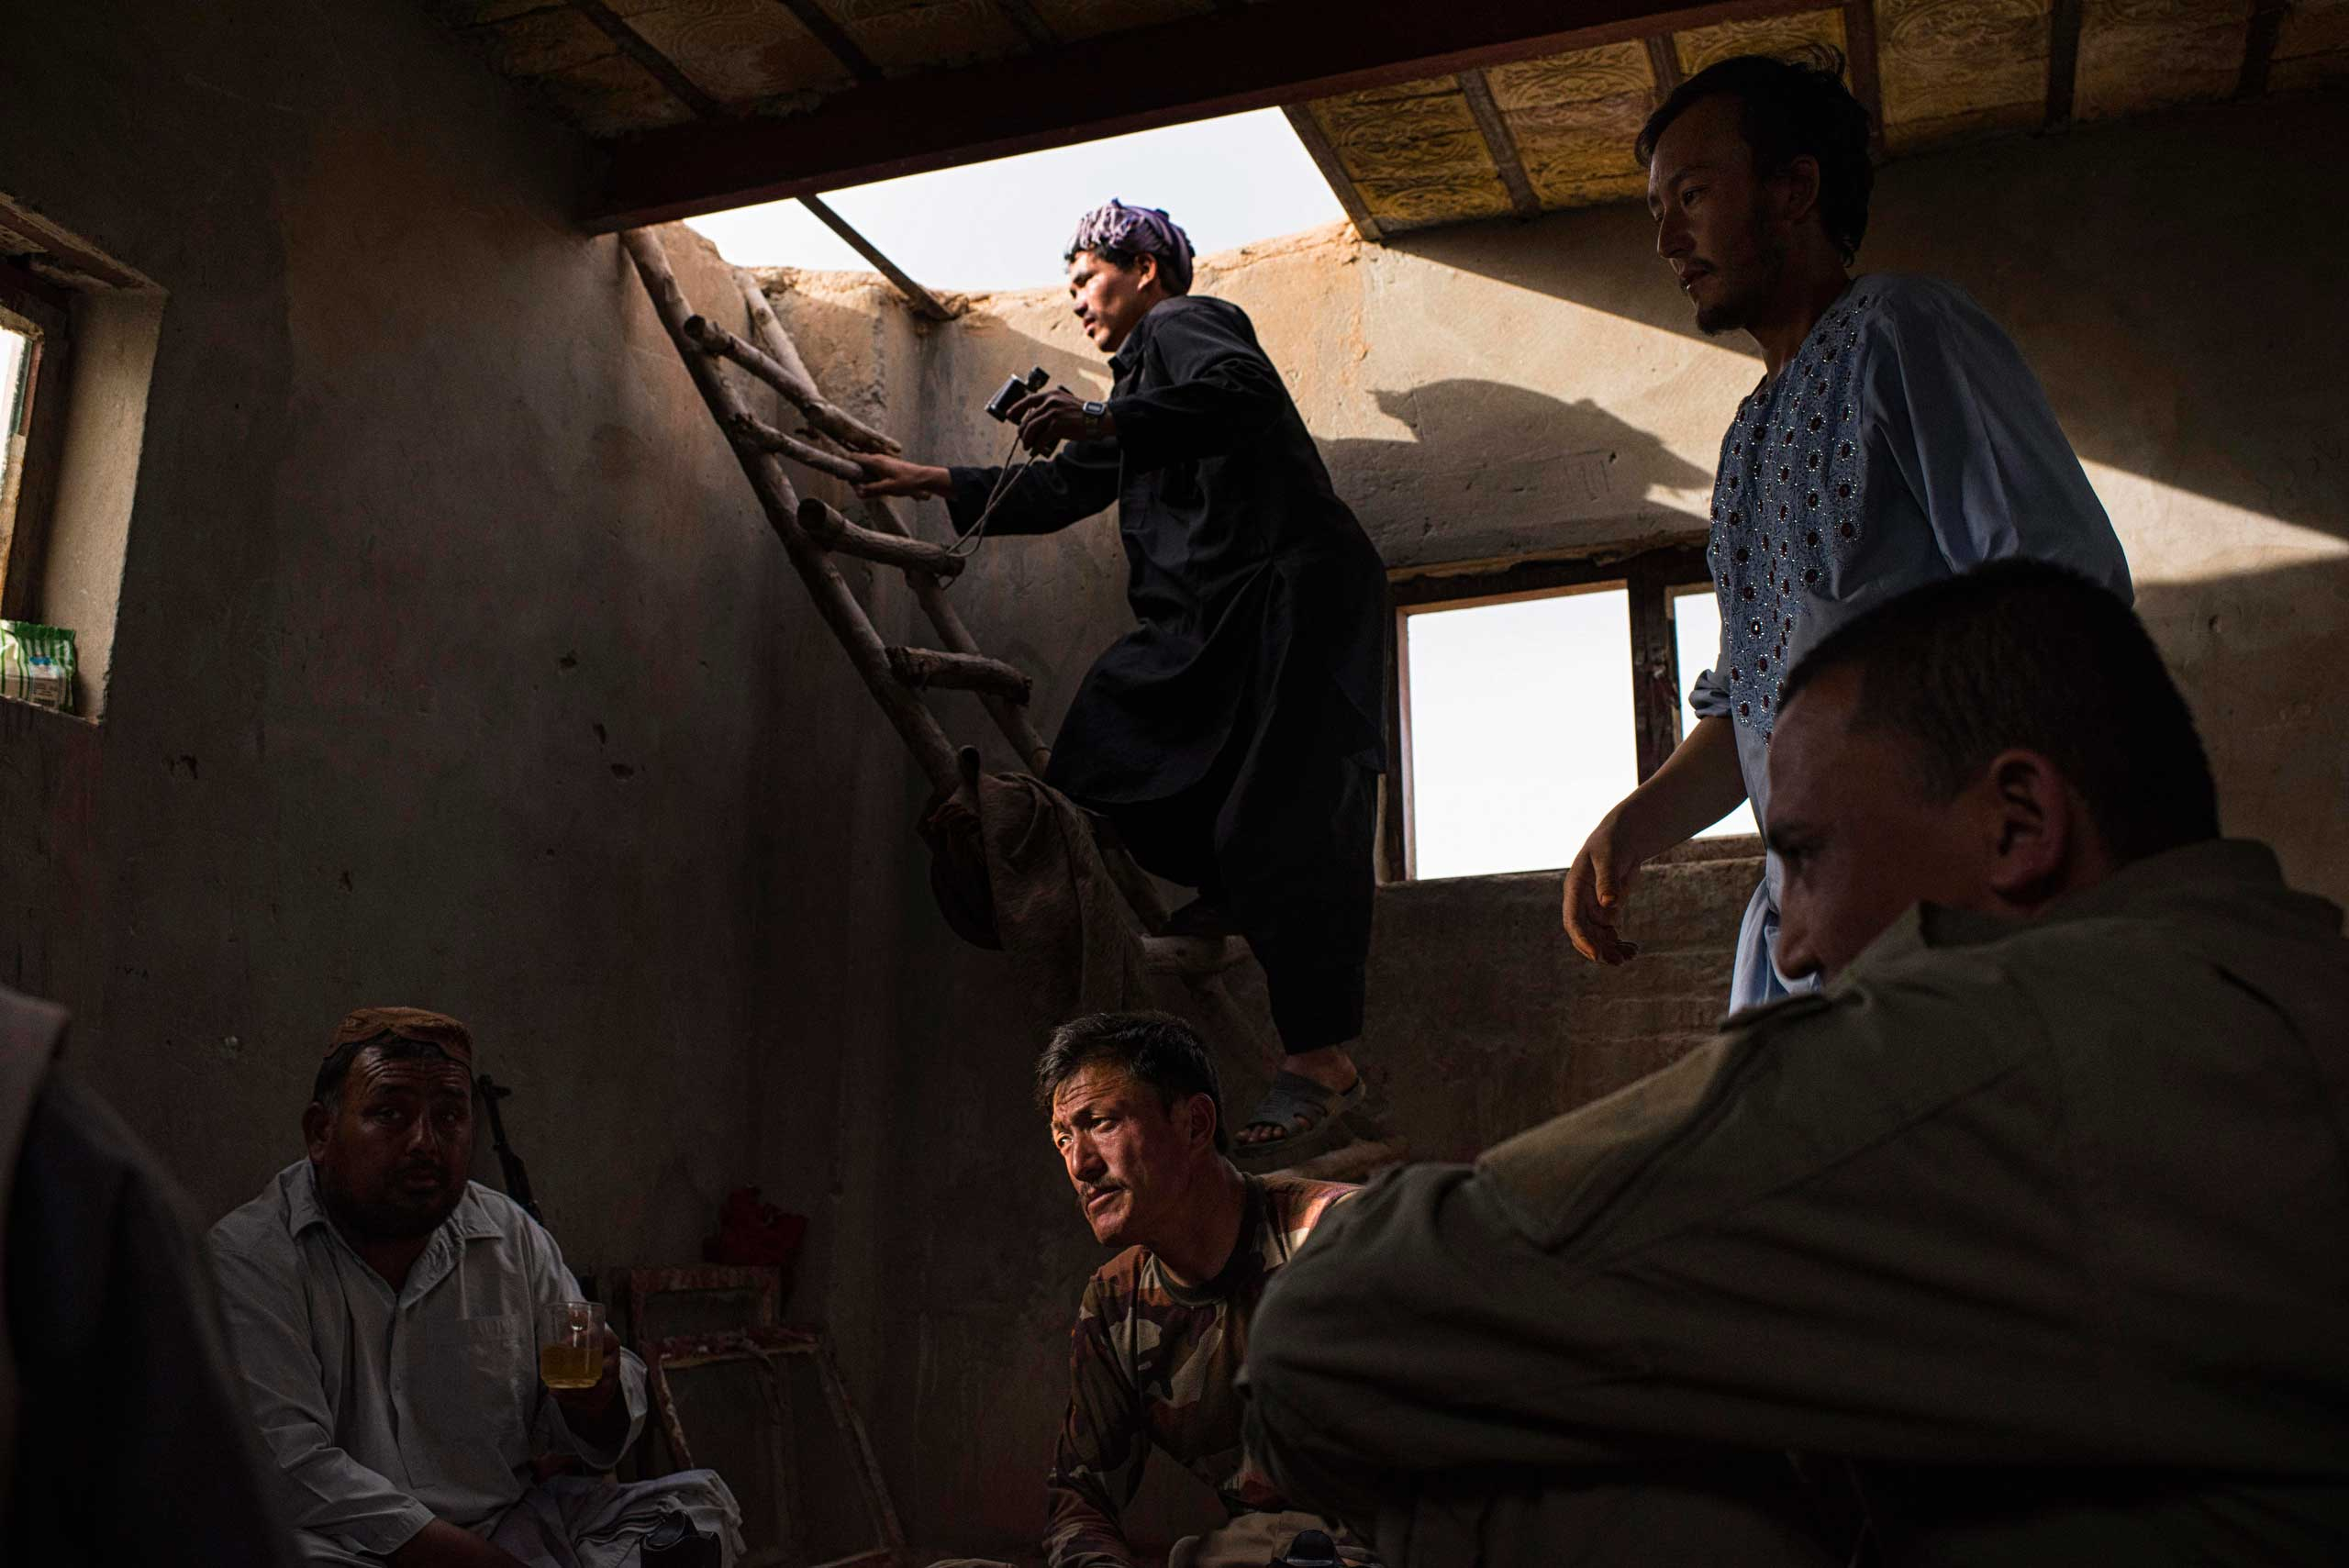 Members of the Afghan Local Police (ALP), one climbing a ladder to keep watch over adjacent fields across which Taliban have conducted raids, inside an ALP outpost in the Sayedabad area of Helmand's Nadali District. Taliban-controlled villages are only a few hundred metres away. After years of relative calm in Nadali District, the ALP, with the support of the Afghan National Army (ANA), are now maintaining the tenuous frontline against the ever-encroaching Taliban who have pushed closer than ever to the nearby Provincial capital, Lashkar Gah, in recent months. The ALP are between a rock and a hard place - unable to lay down their arms because of the immediate proximity of Taliban fighters but under-equipped to provide adequate protection for the villages they protect and call home.